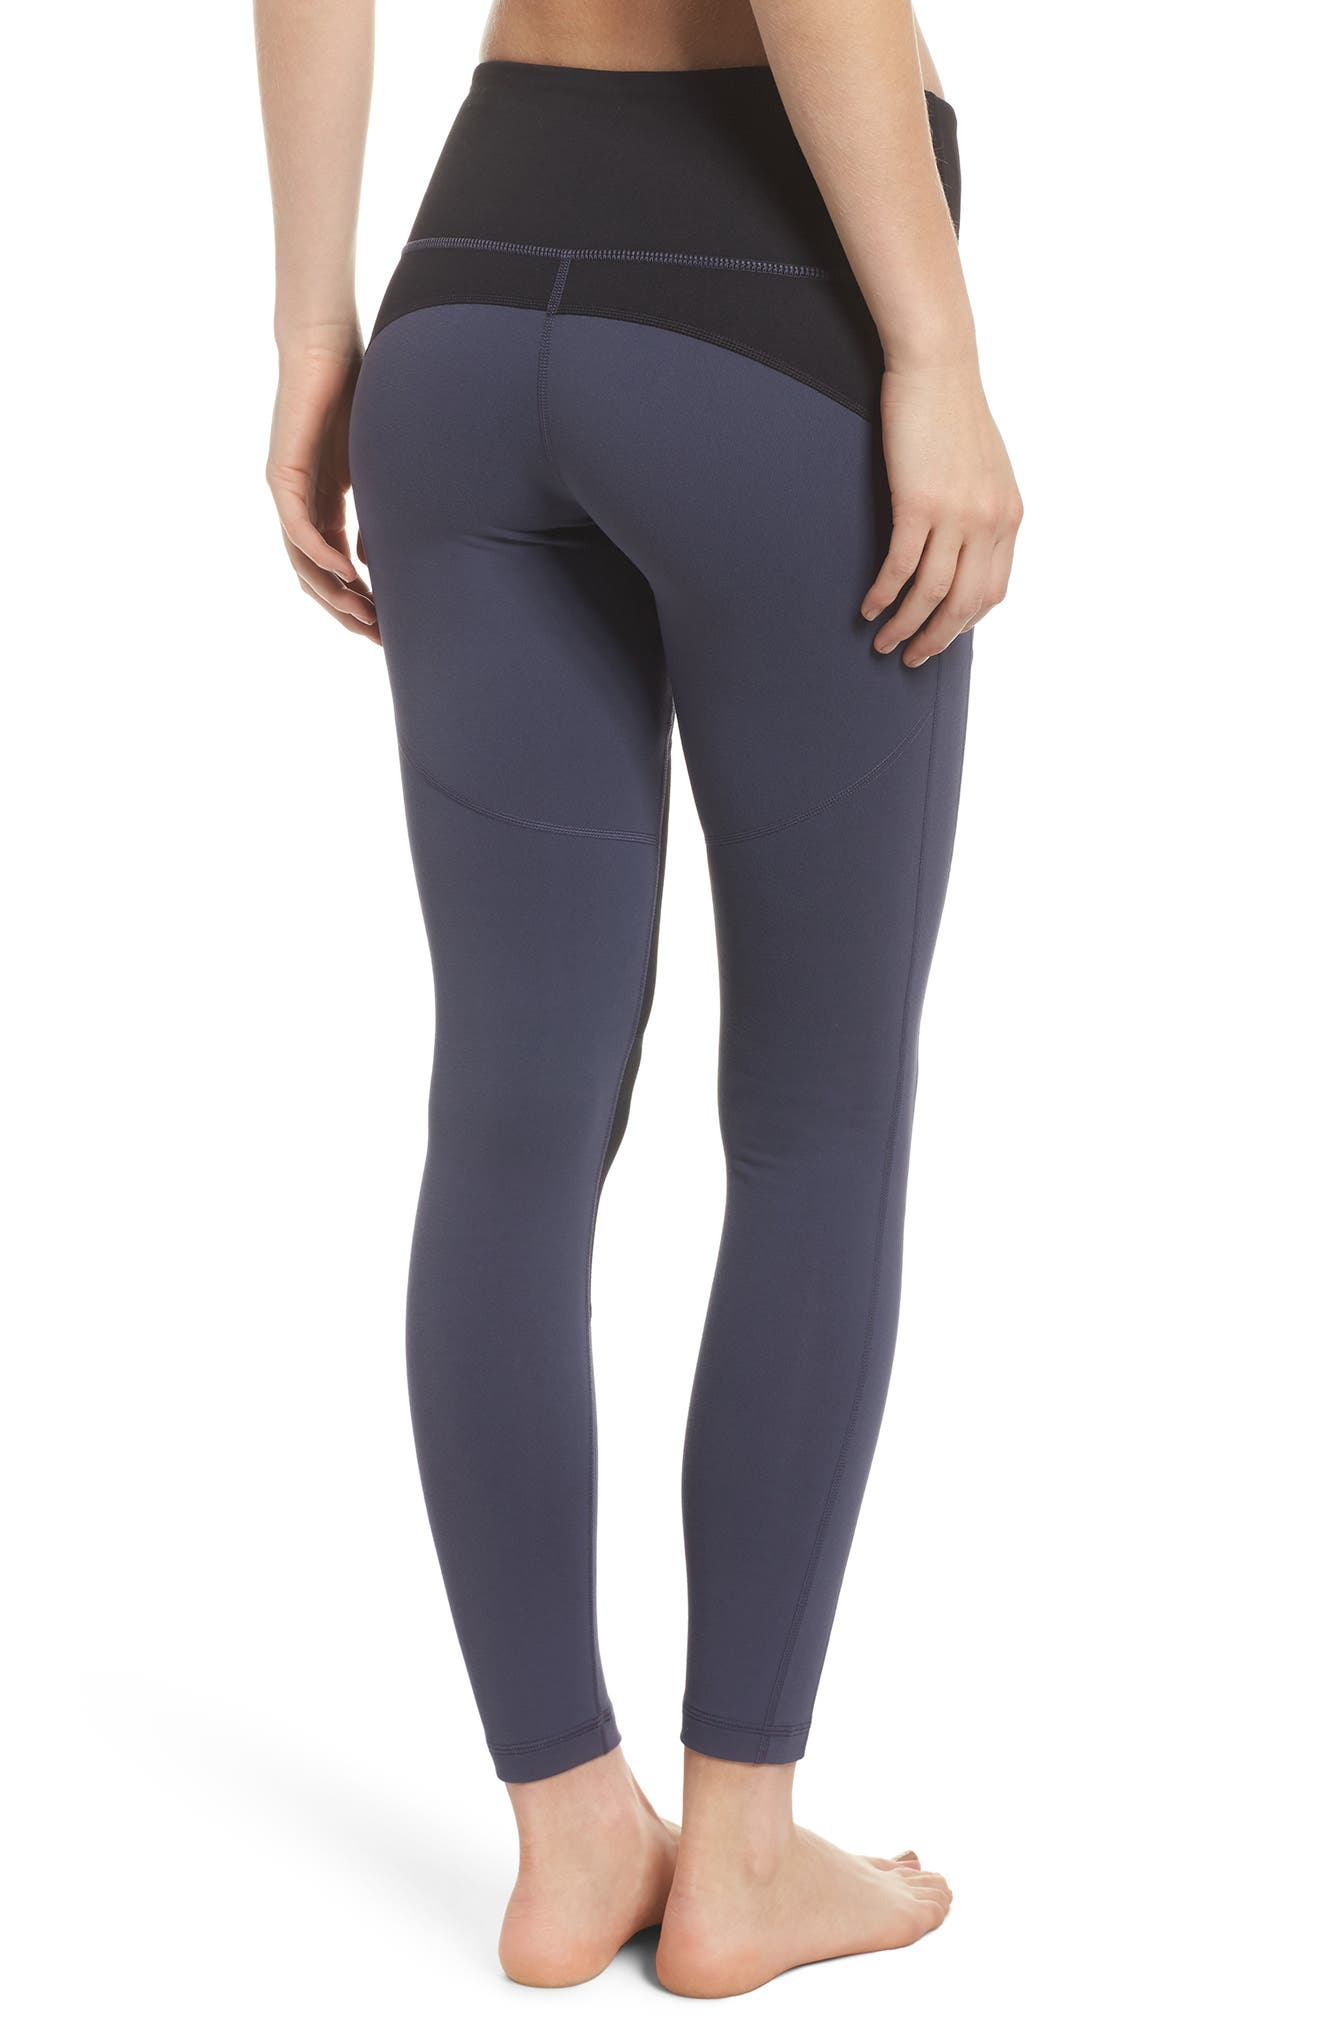 Autumn Block Ankle Leggings,                             Alternate thumbnail 2, color,                             021